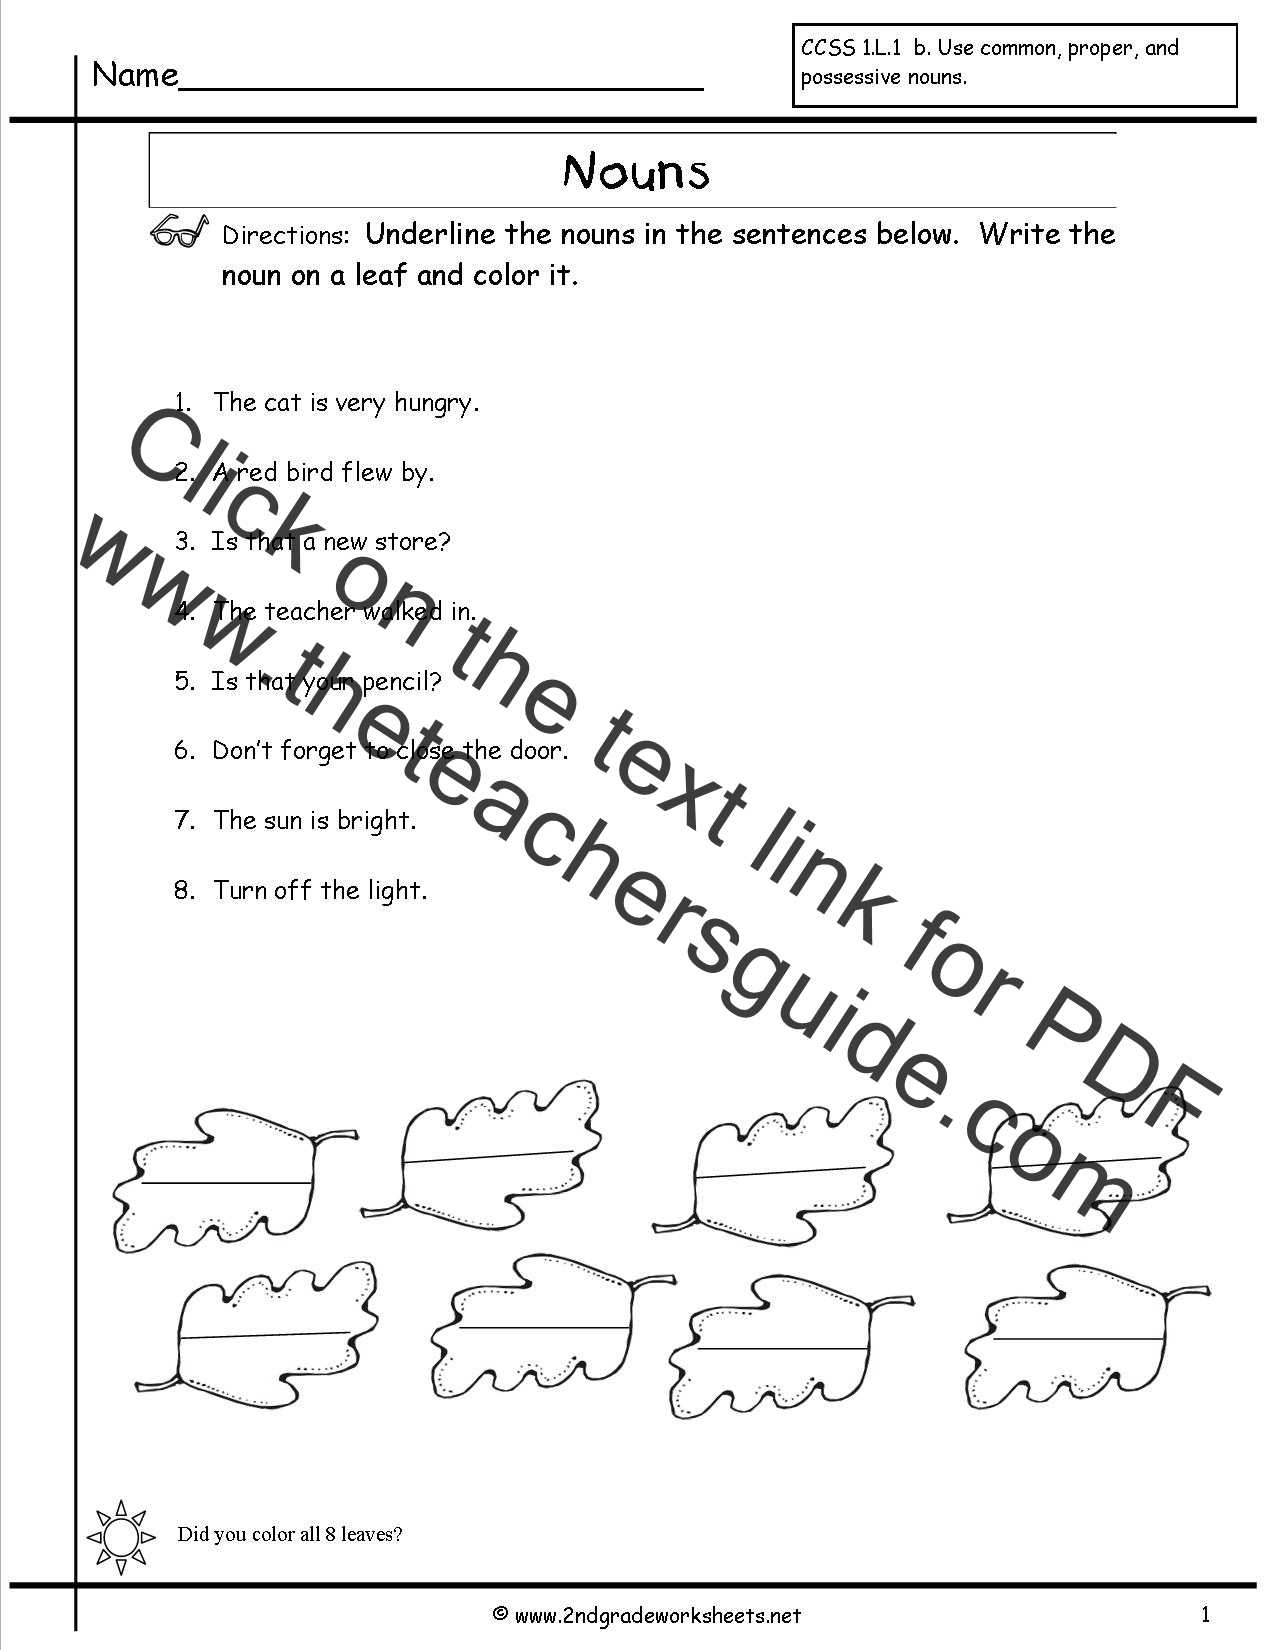 Worksheets Grammar Worksheets For 1st Grade worksheets and printouts nouns worksheet